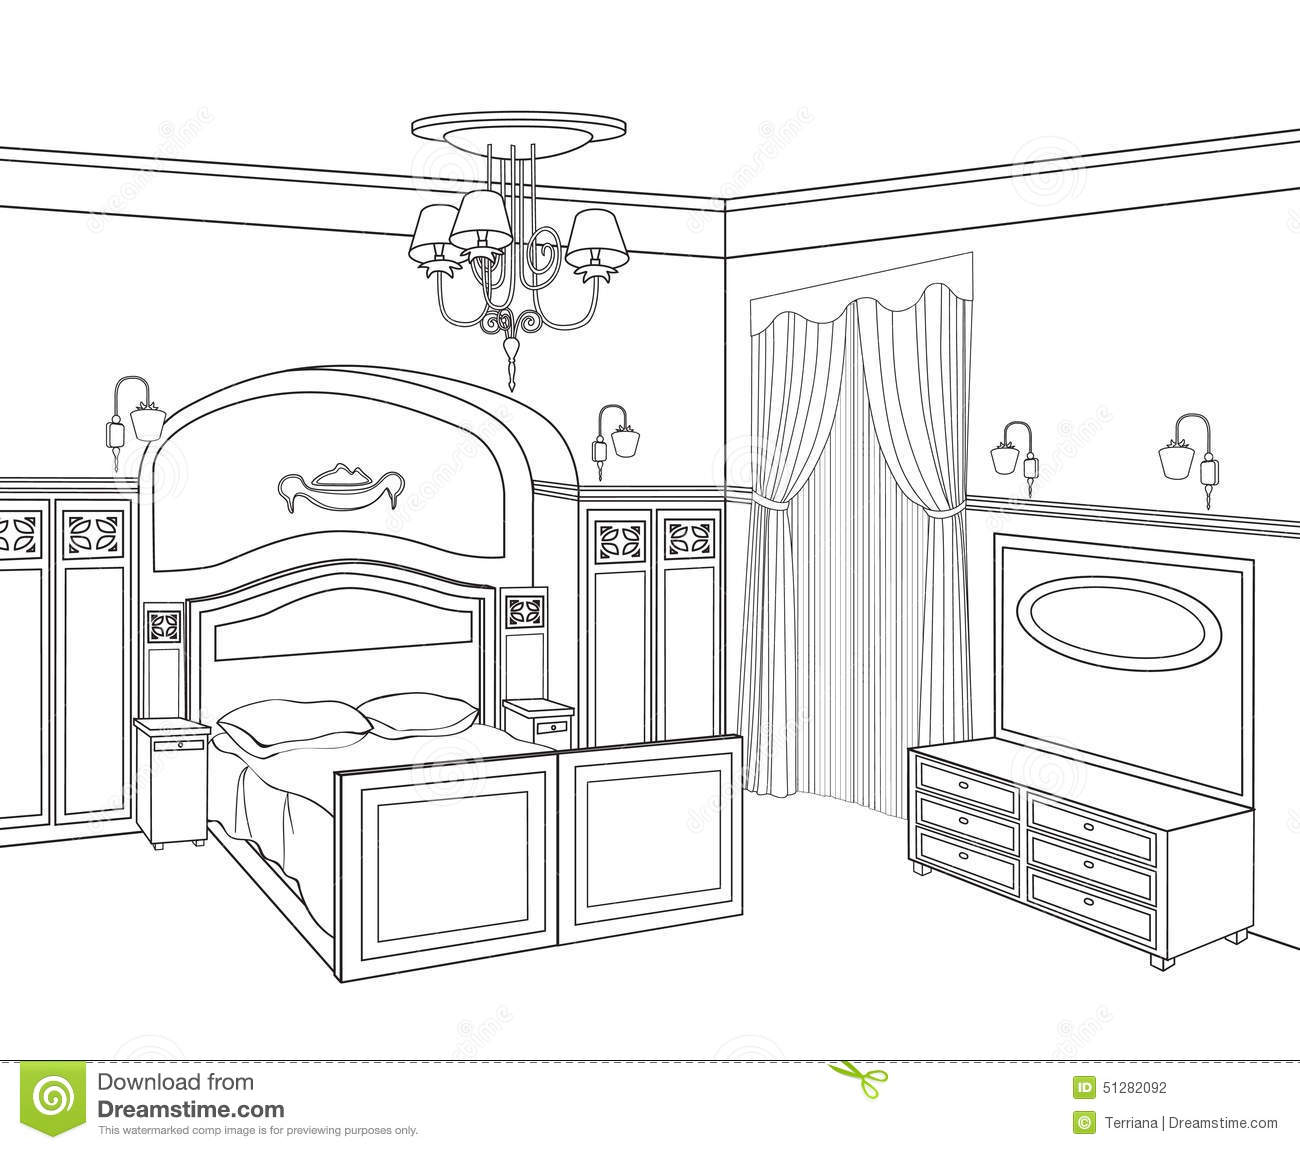 Bedroom furniture retro style bed room stock for Decor outline